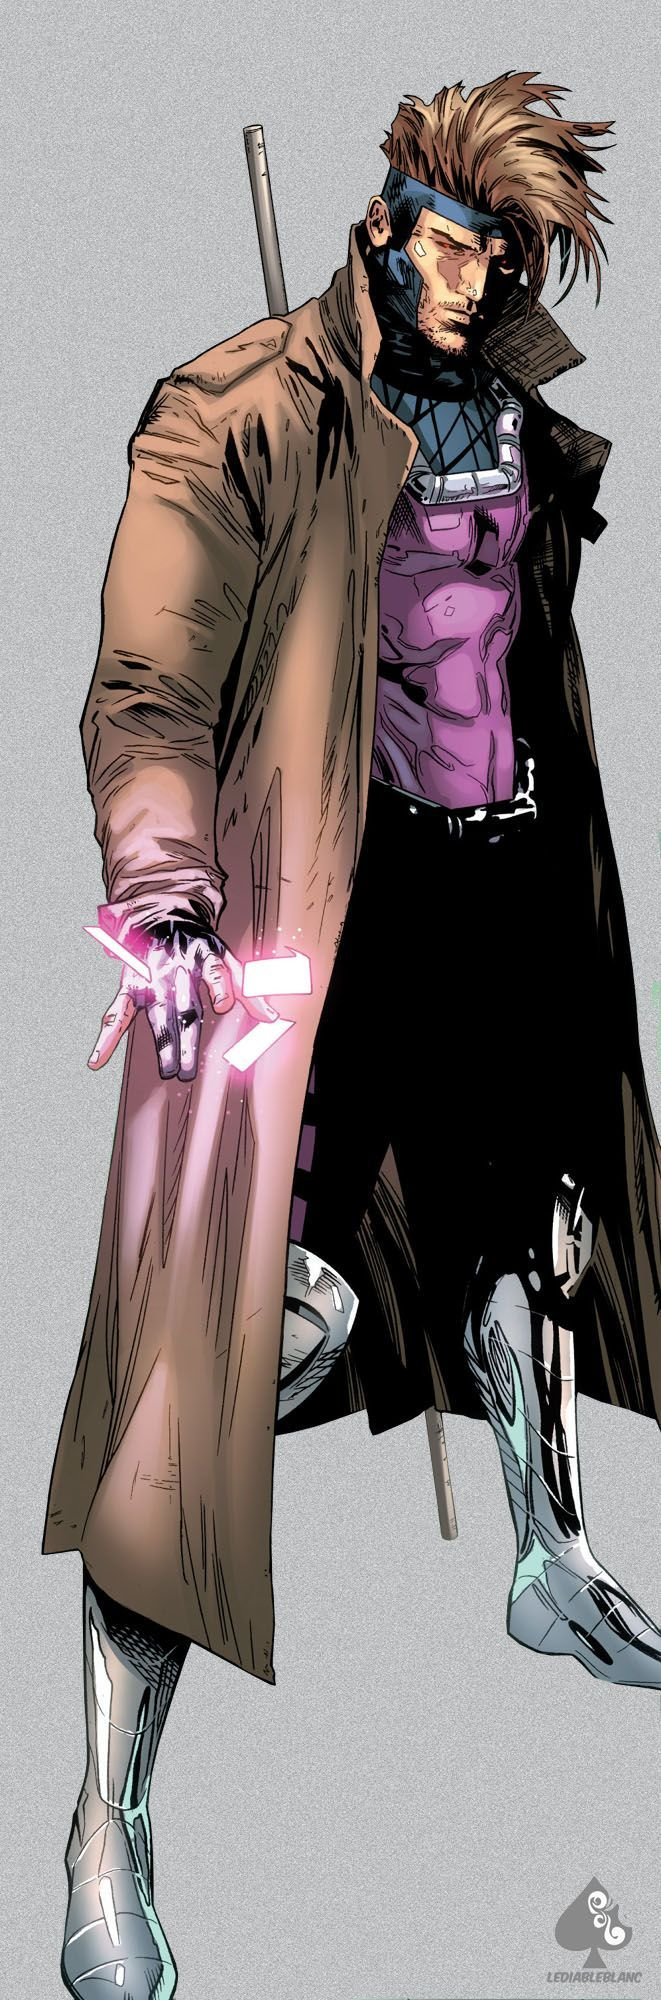 Gambit may favorite xmen !!! I love him they need a gambit movie for real ! (For realz I agree. STW)